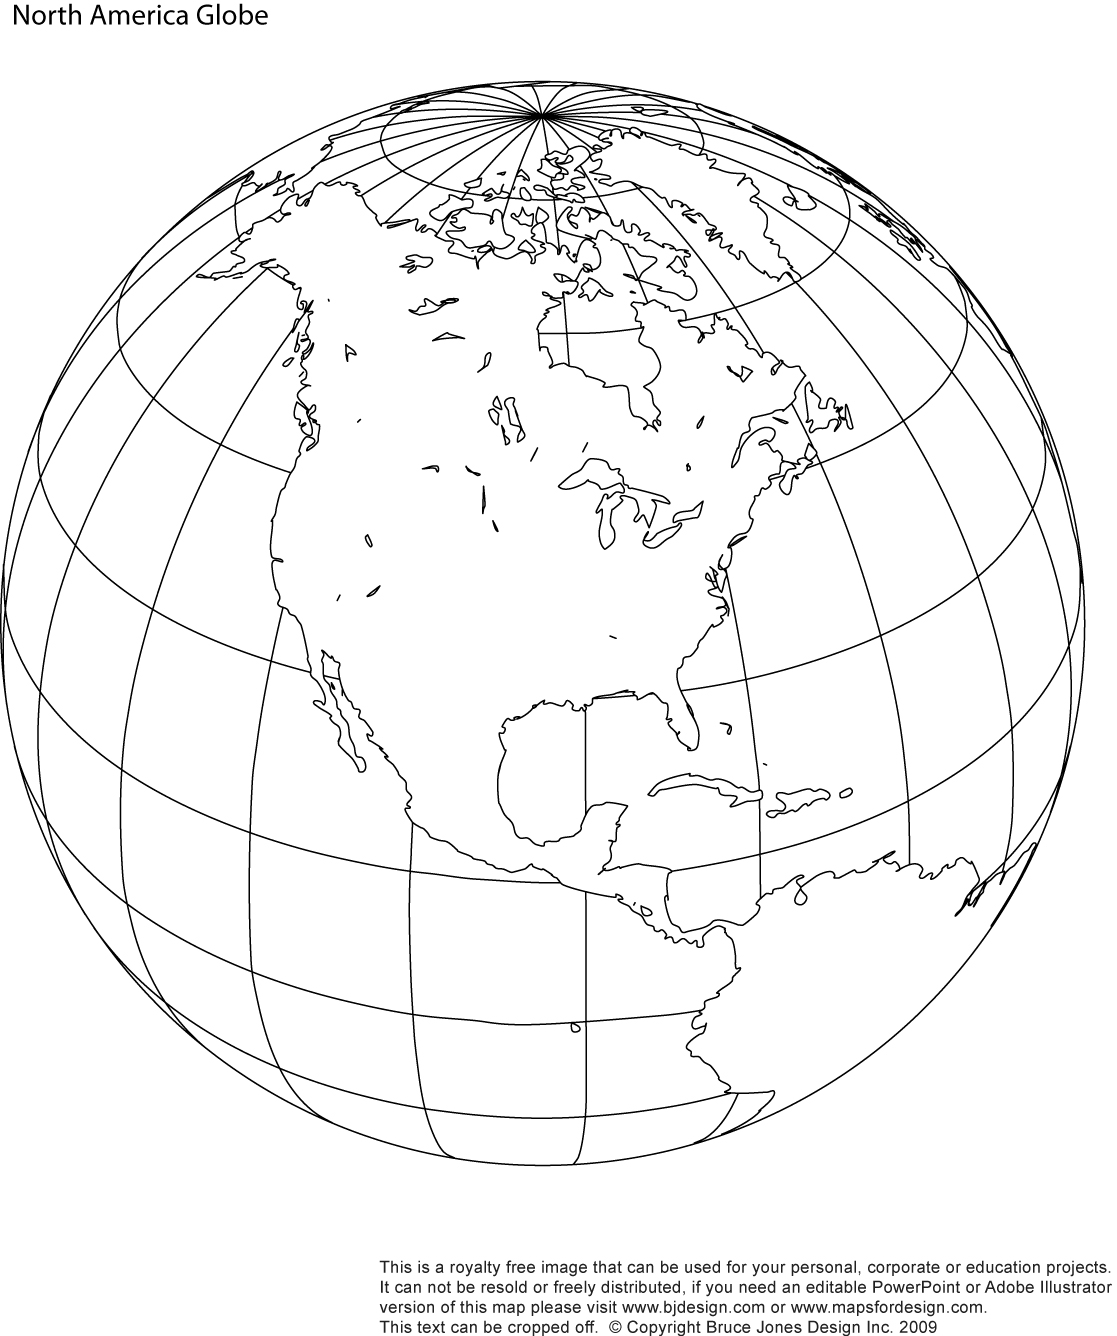 Printable Blank World Globe Earth Maps Royalty Free Jpg - Blank map of the americas printable